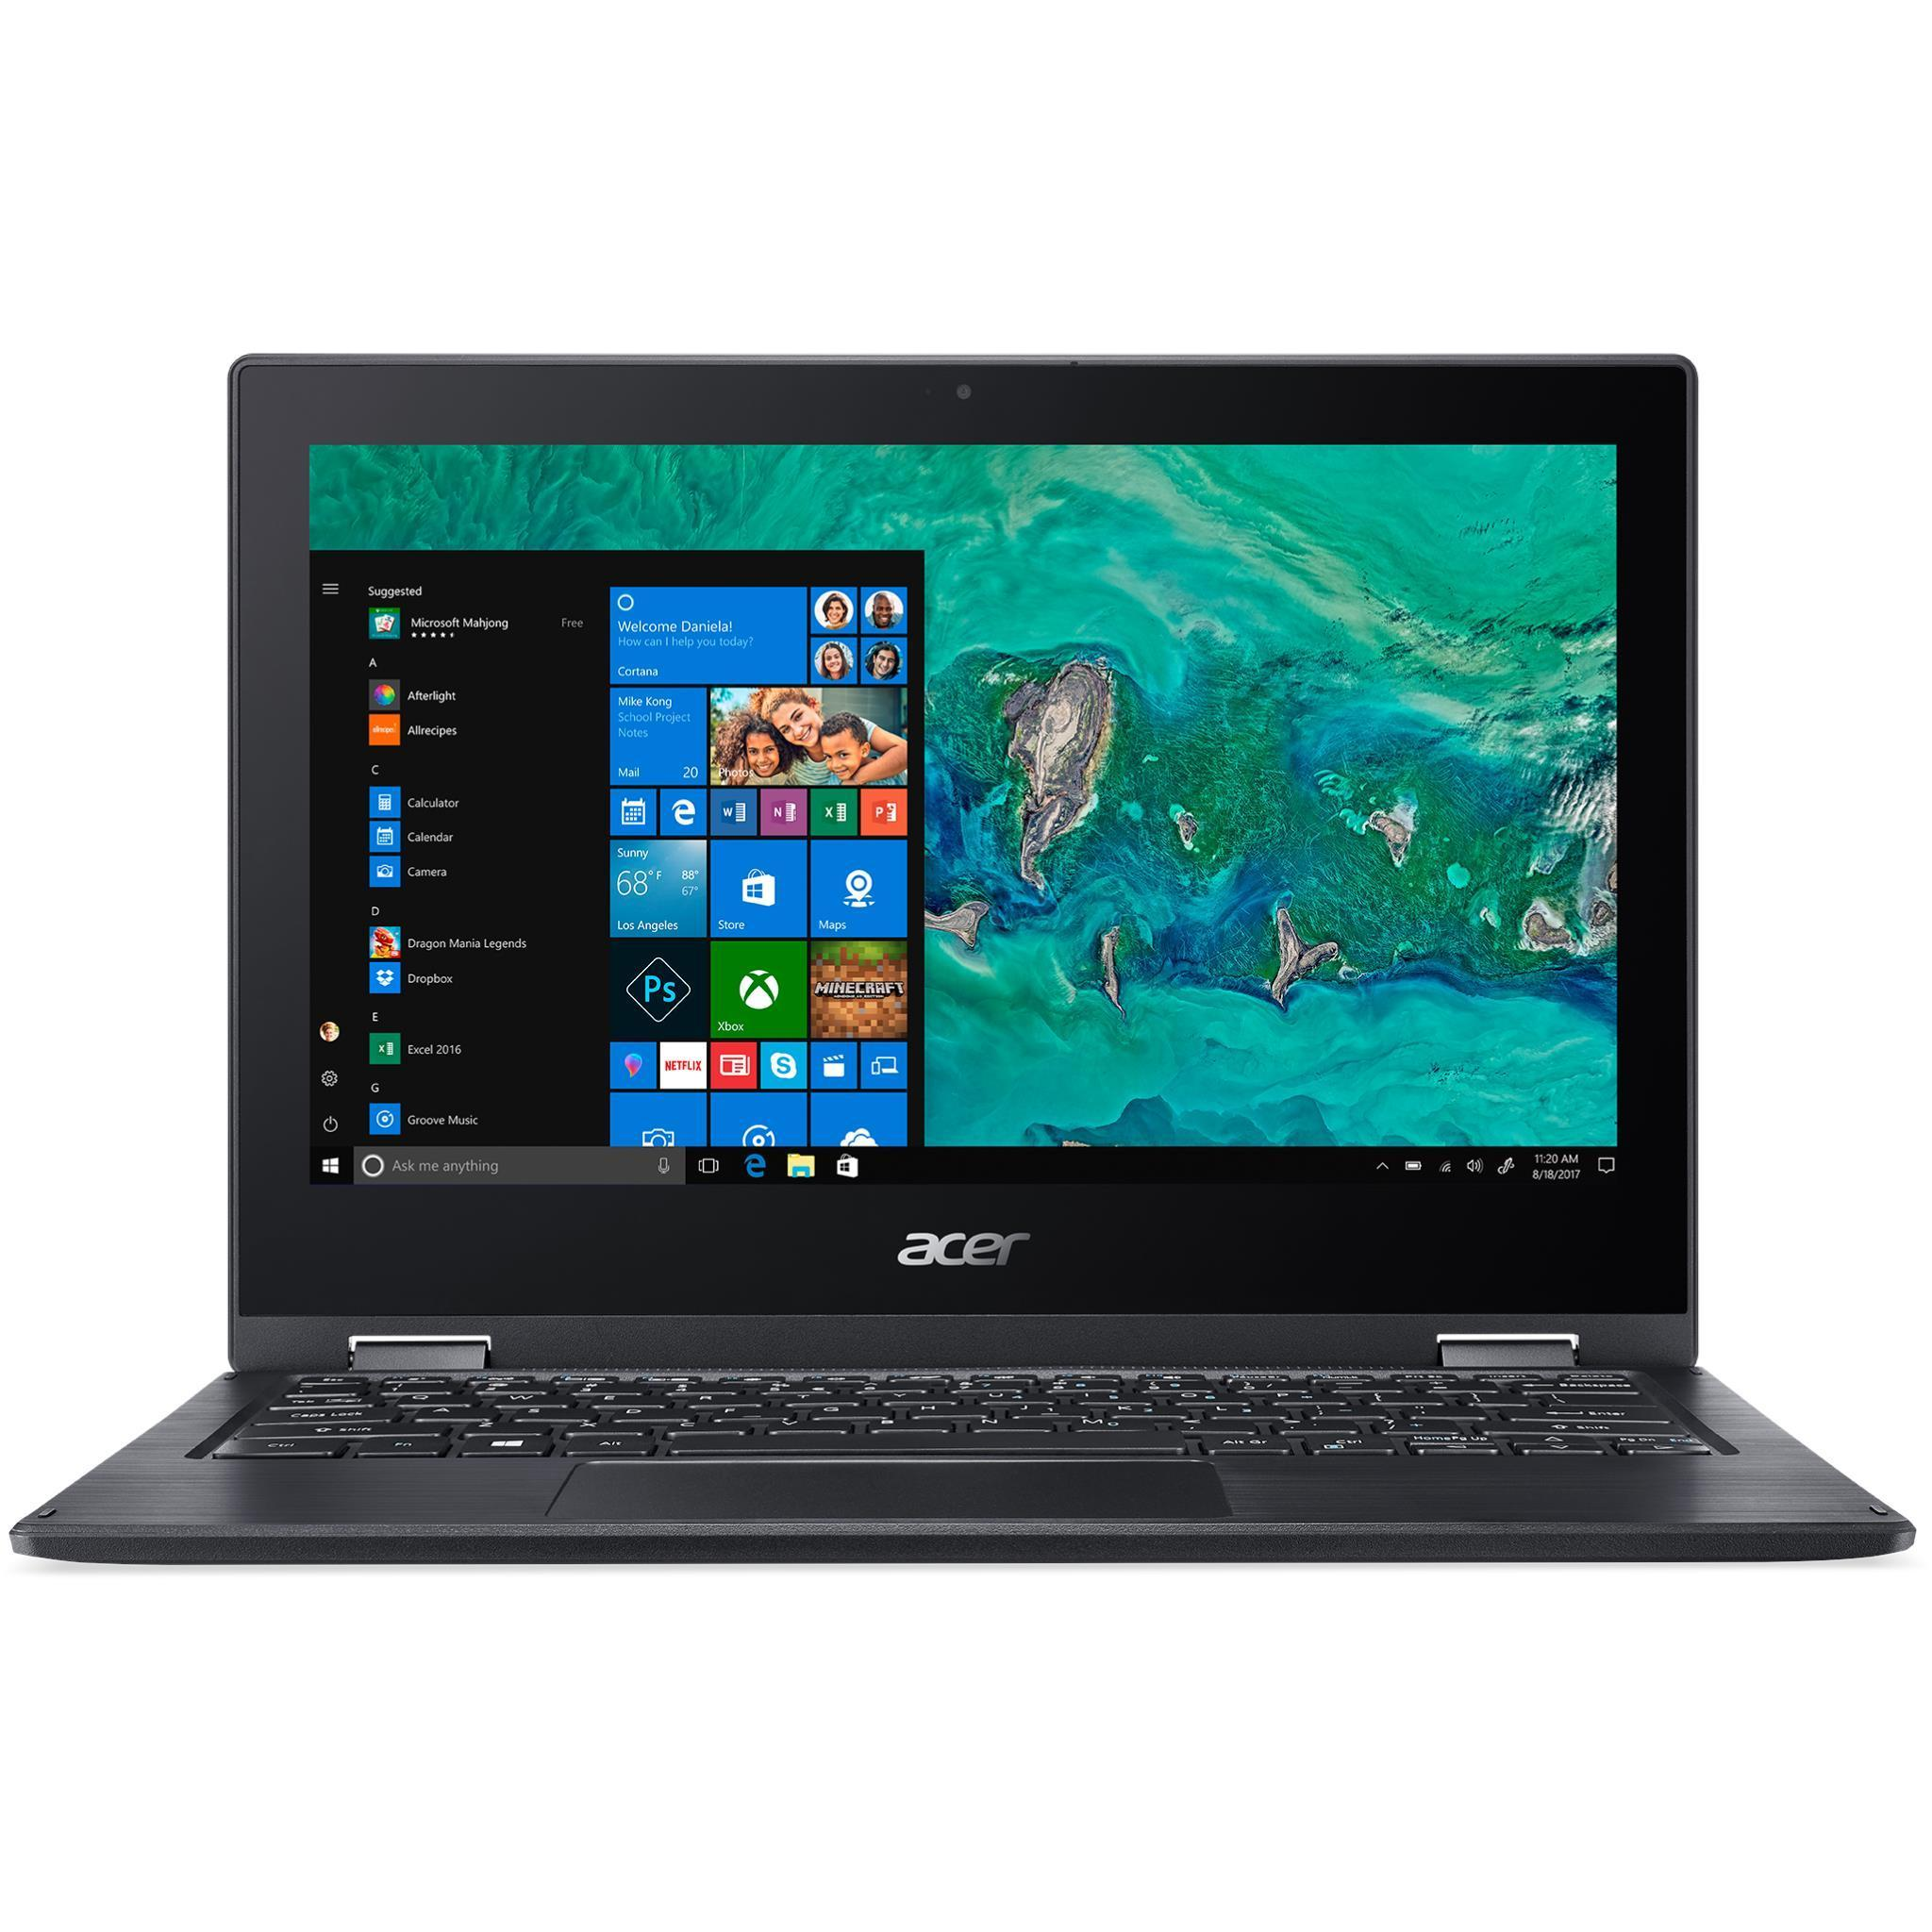 Acer Spin 1 SP111-33-C3YD 11.6″ 2-in-1 Touchscreen Laptop (64GB)